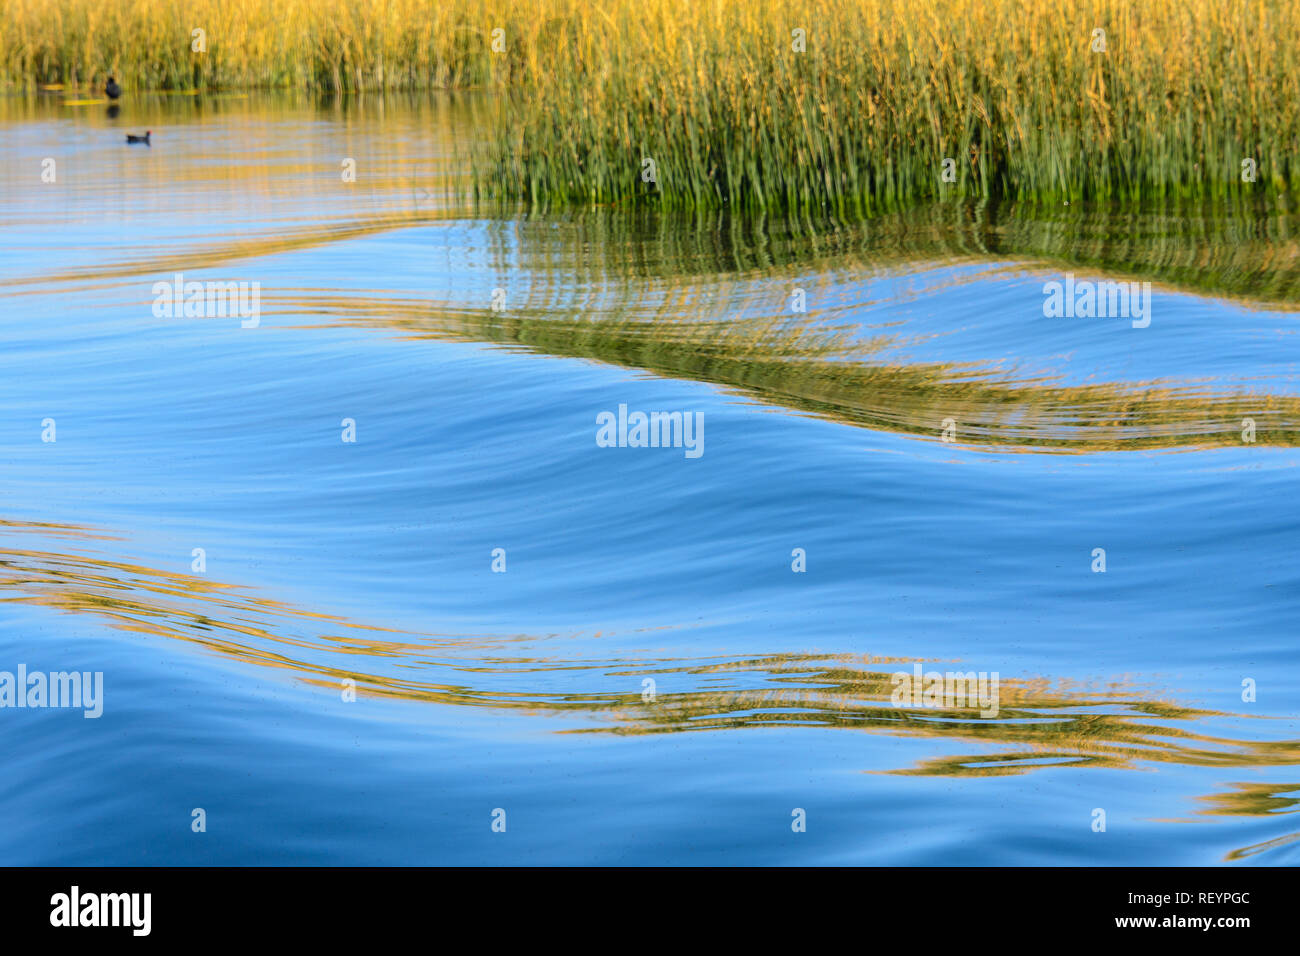 Reed on the shores of Lake Titicaca, Peru - Stock Image